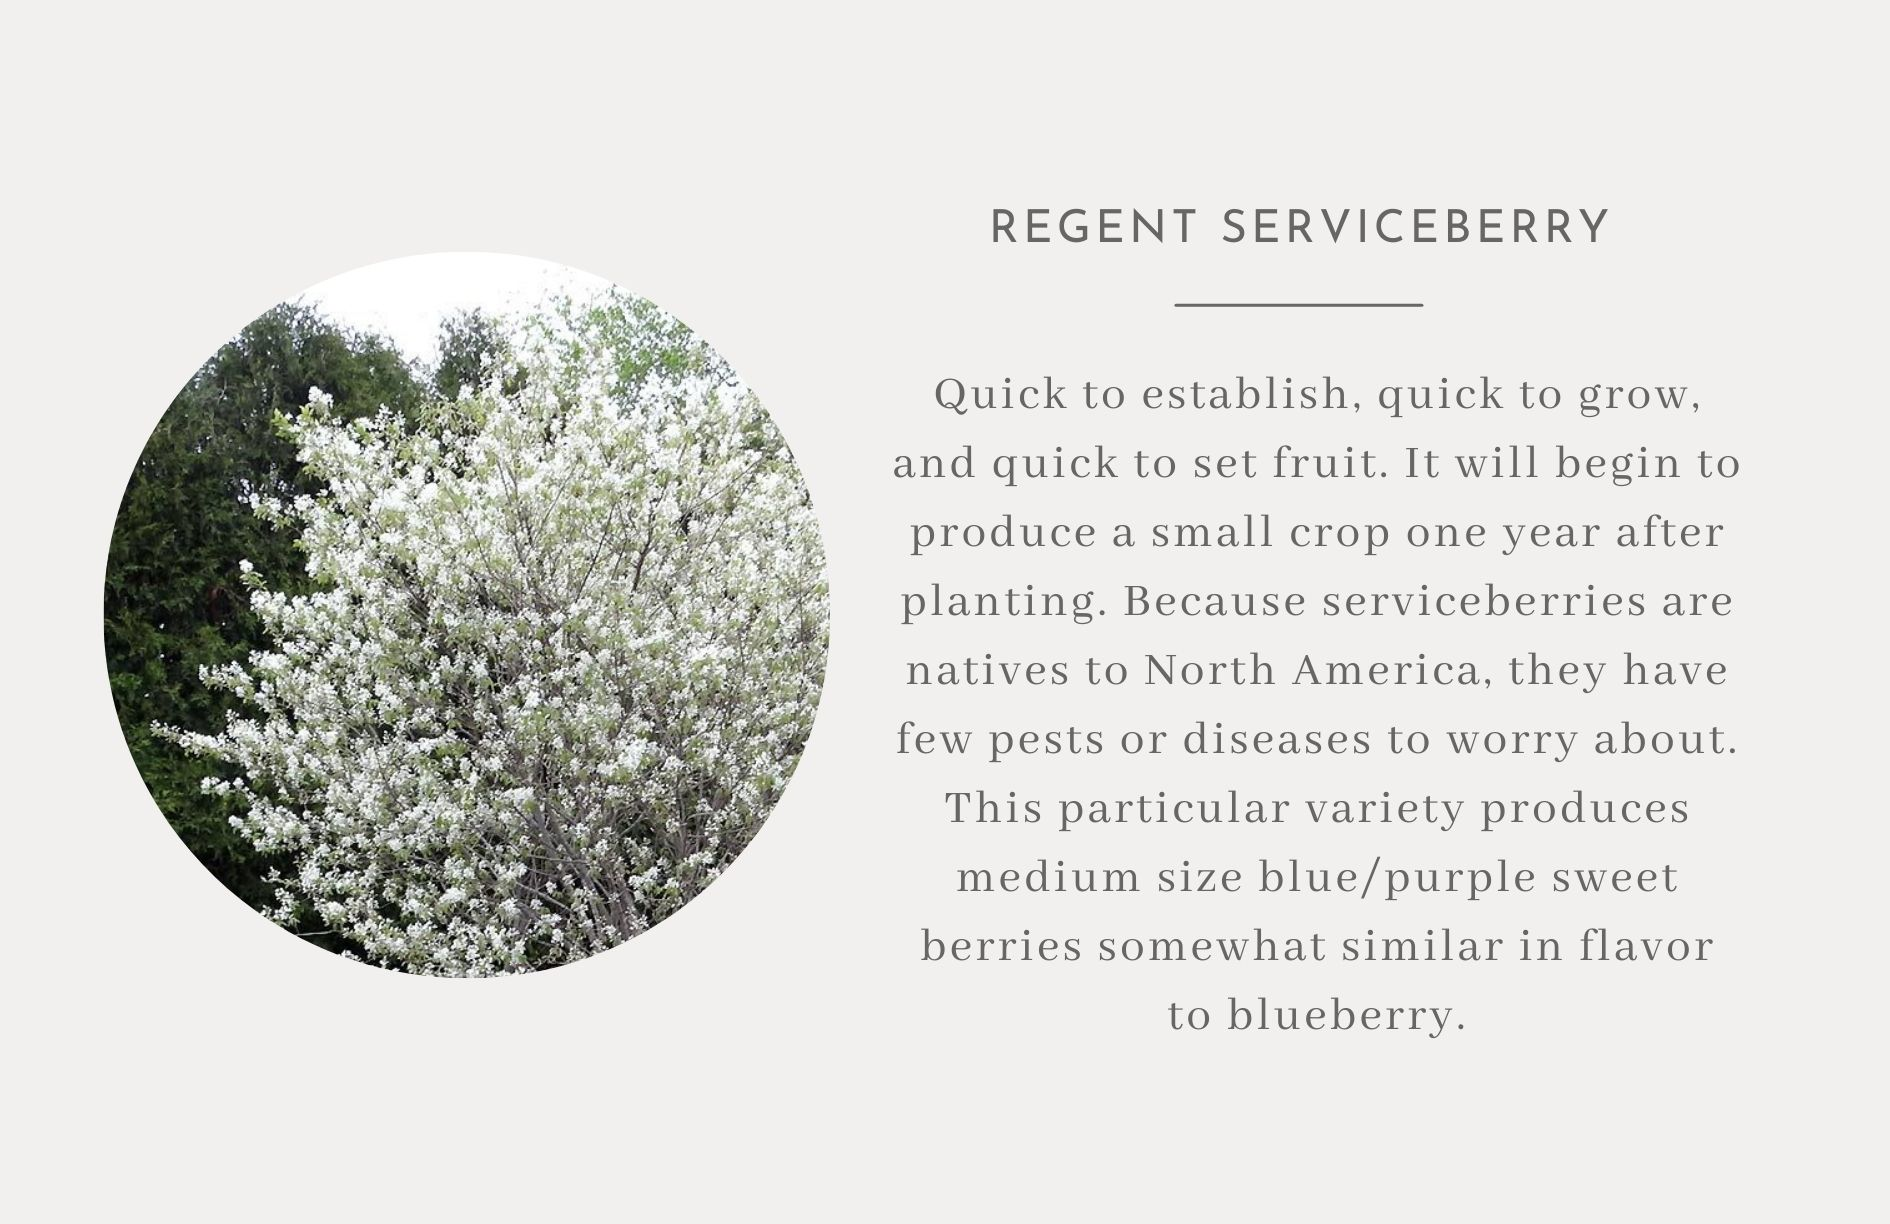 Regent Serviceberry- Edible trees and bushes